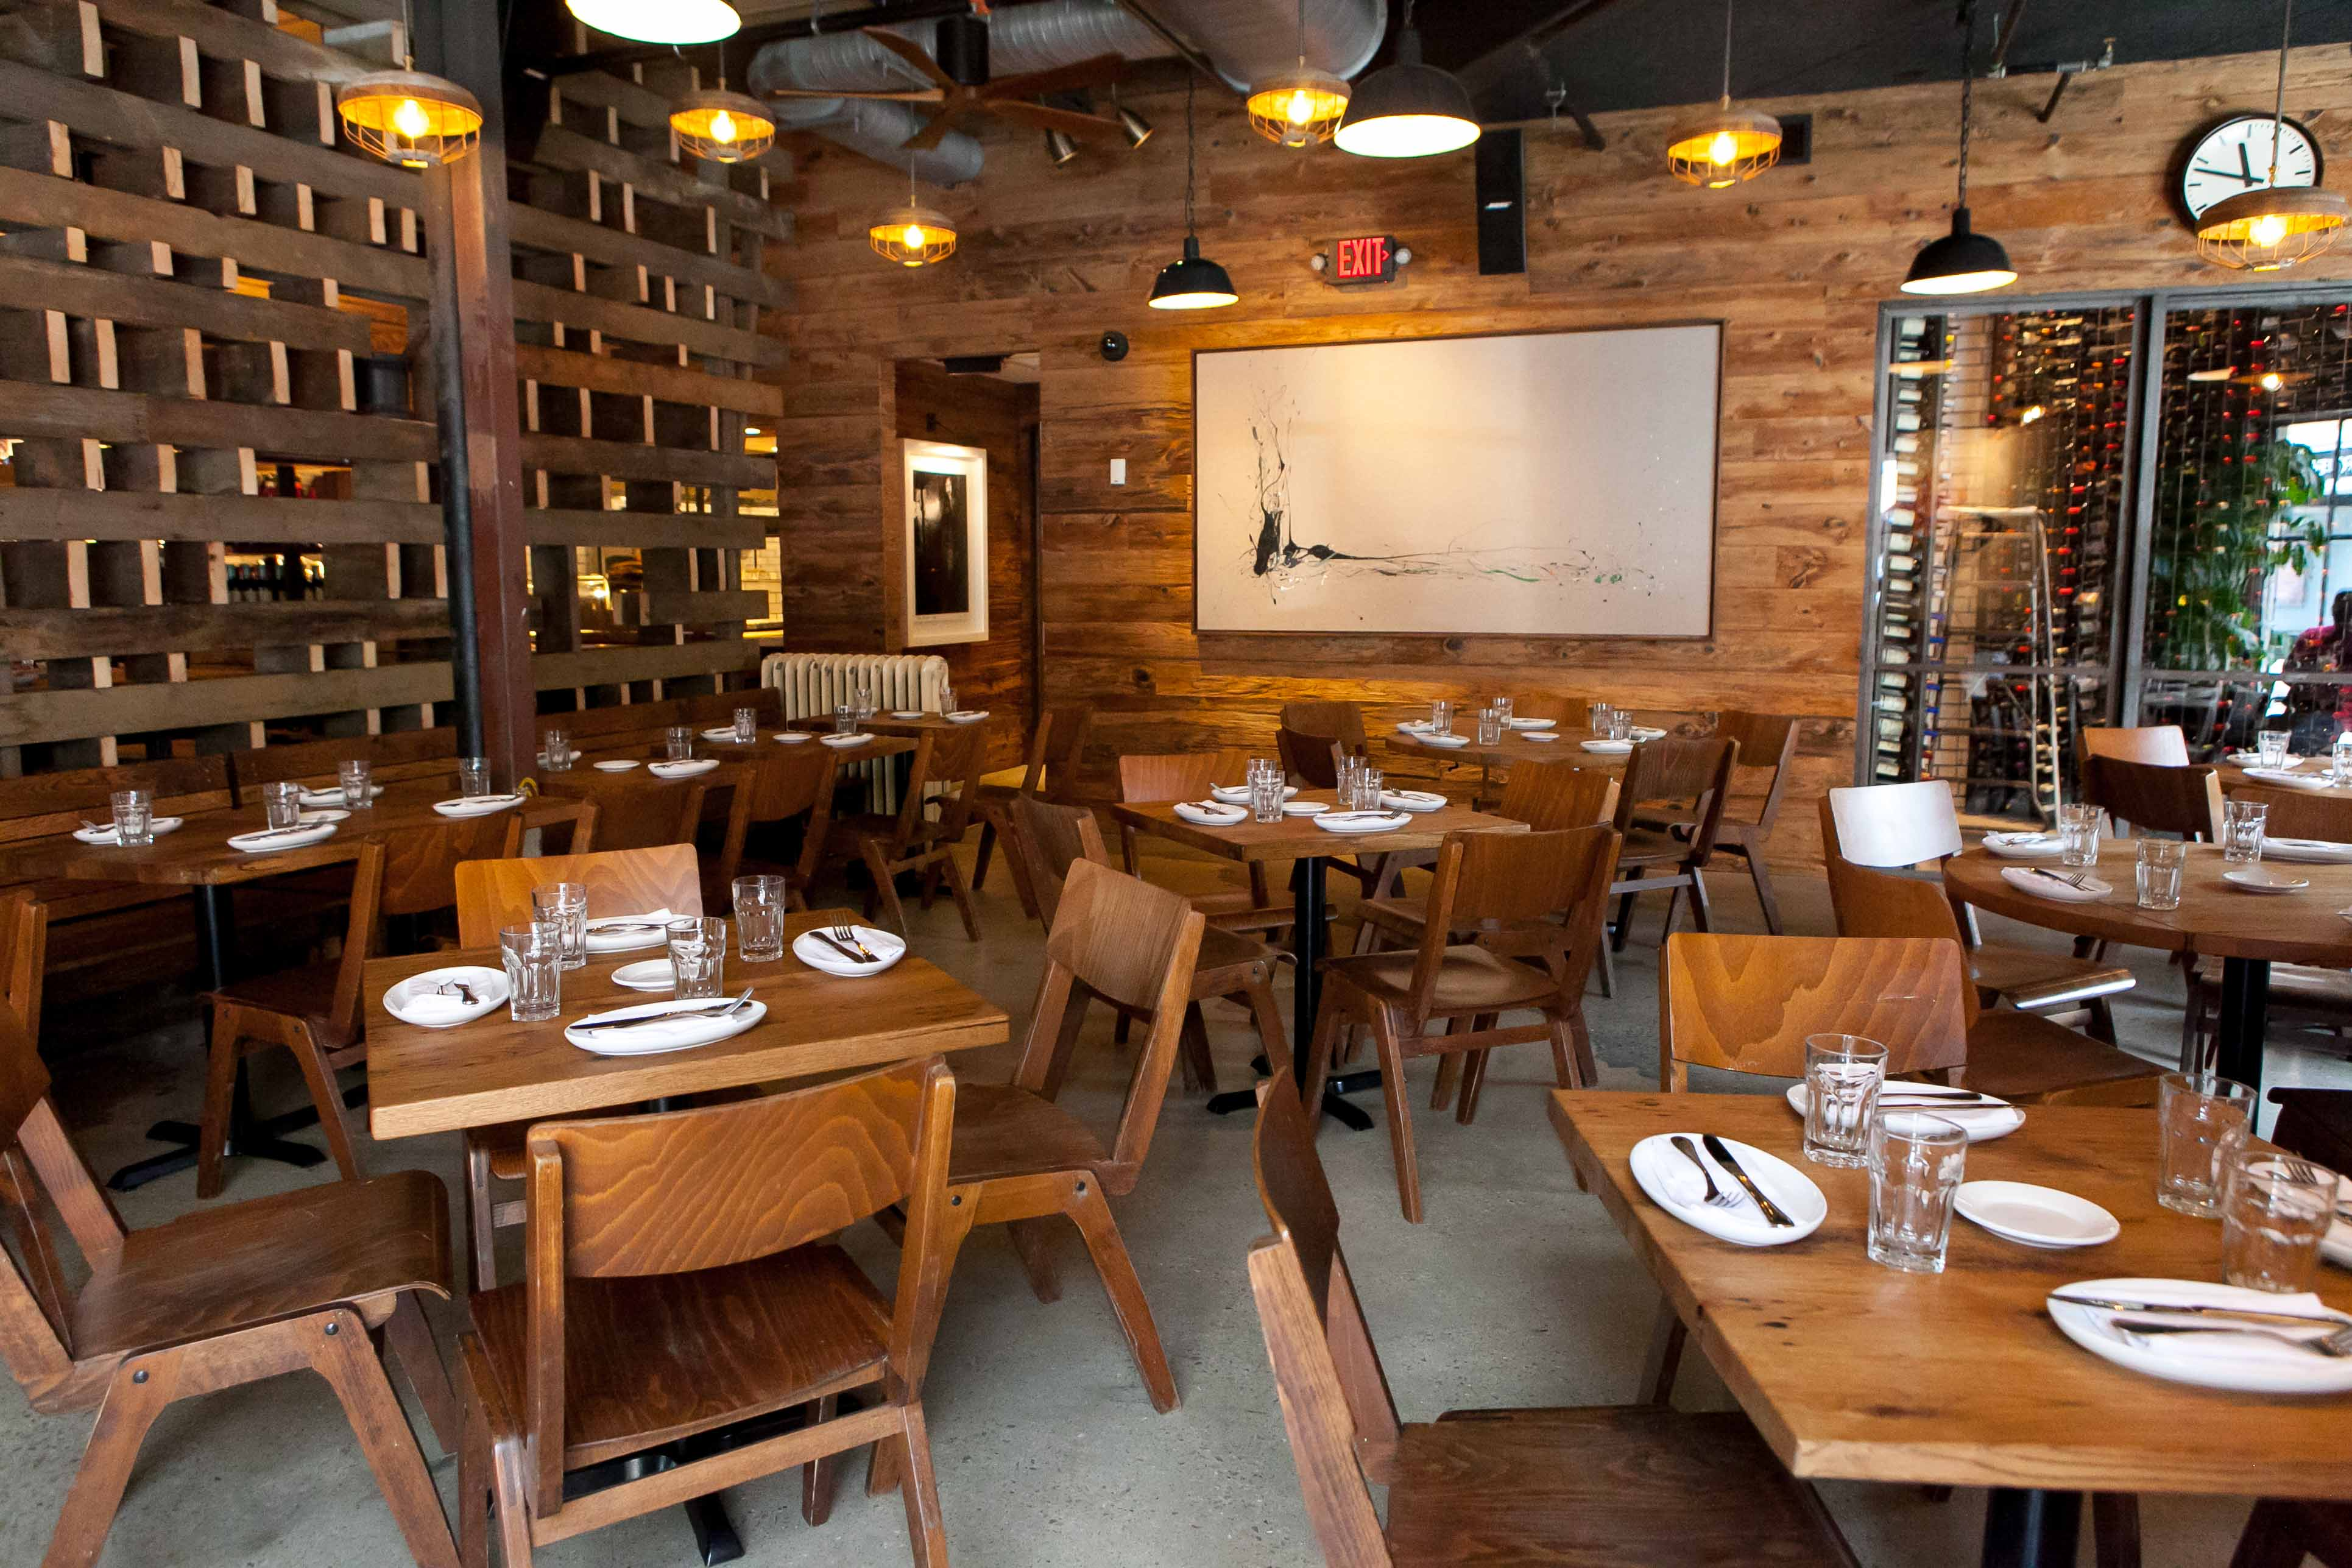 Take A Look At The Spanish Tapas At Barcelona On East Passyunk